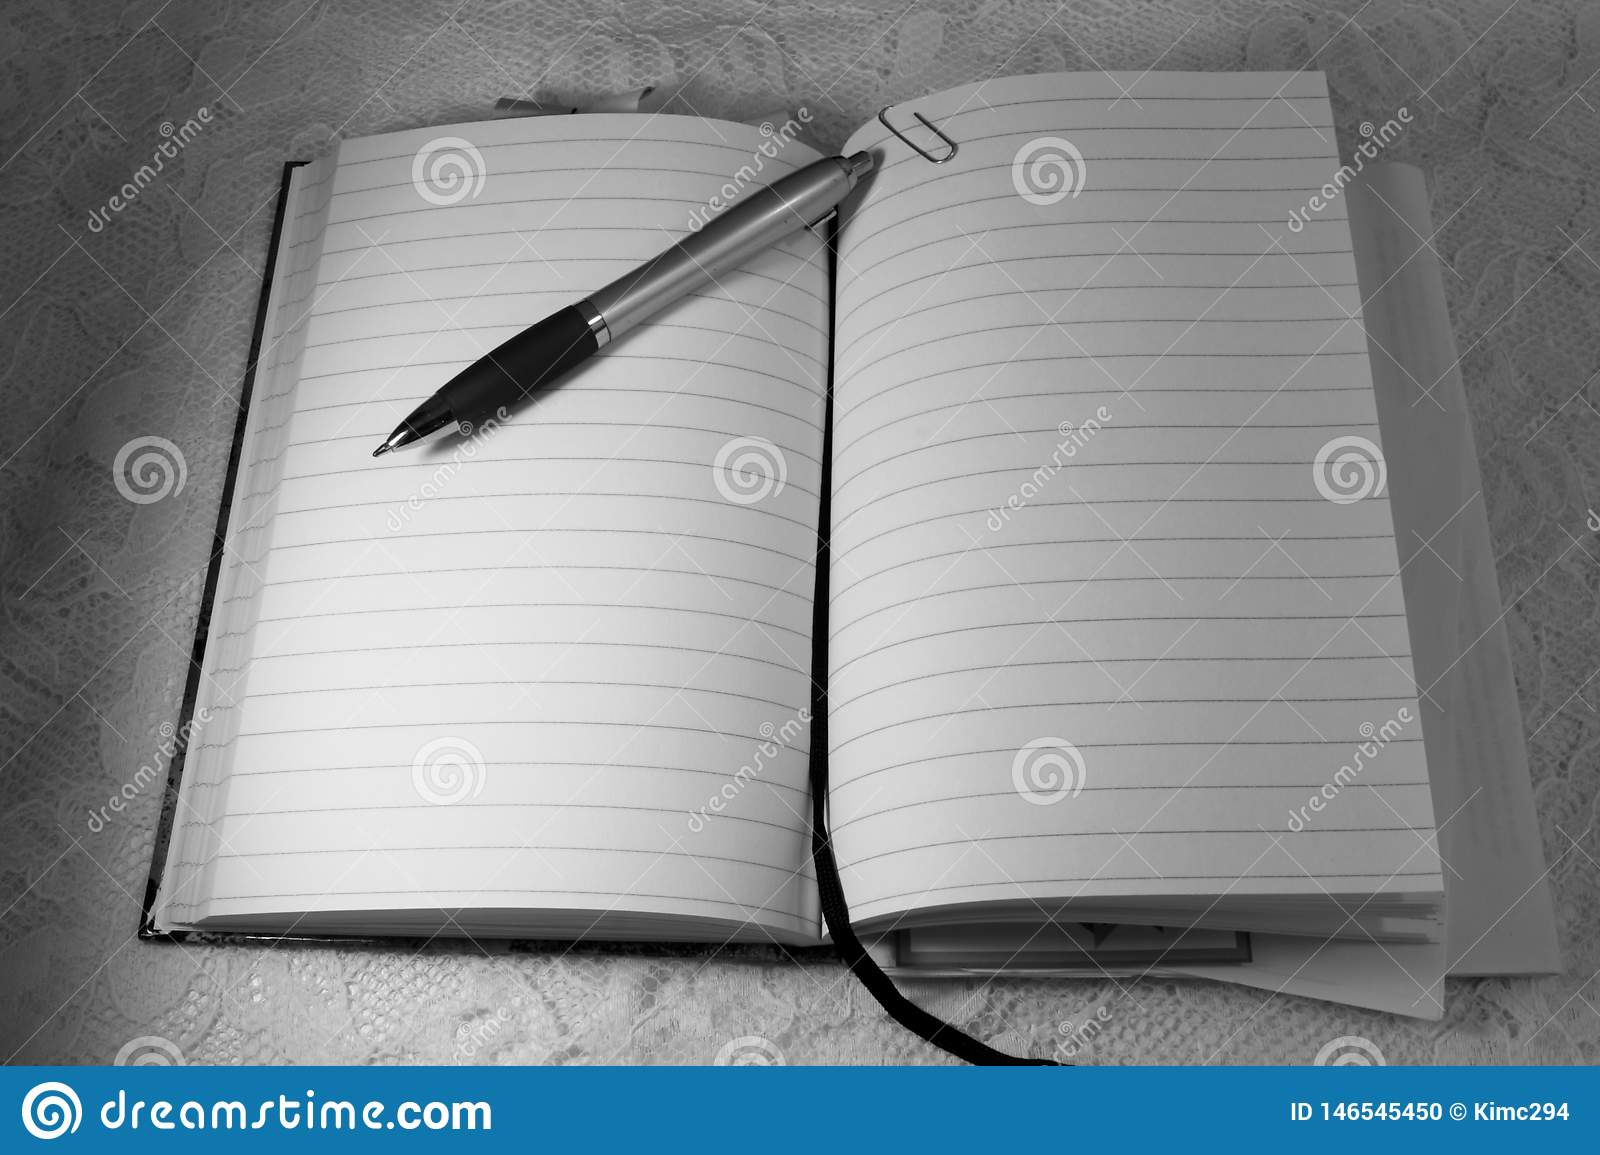 A ballpoint pencil lies on top of an opened diary book